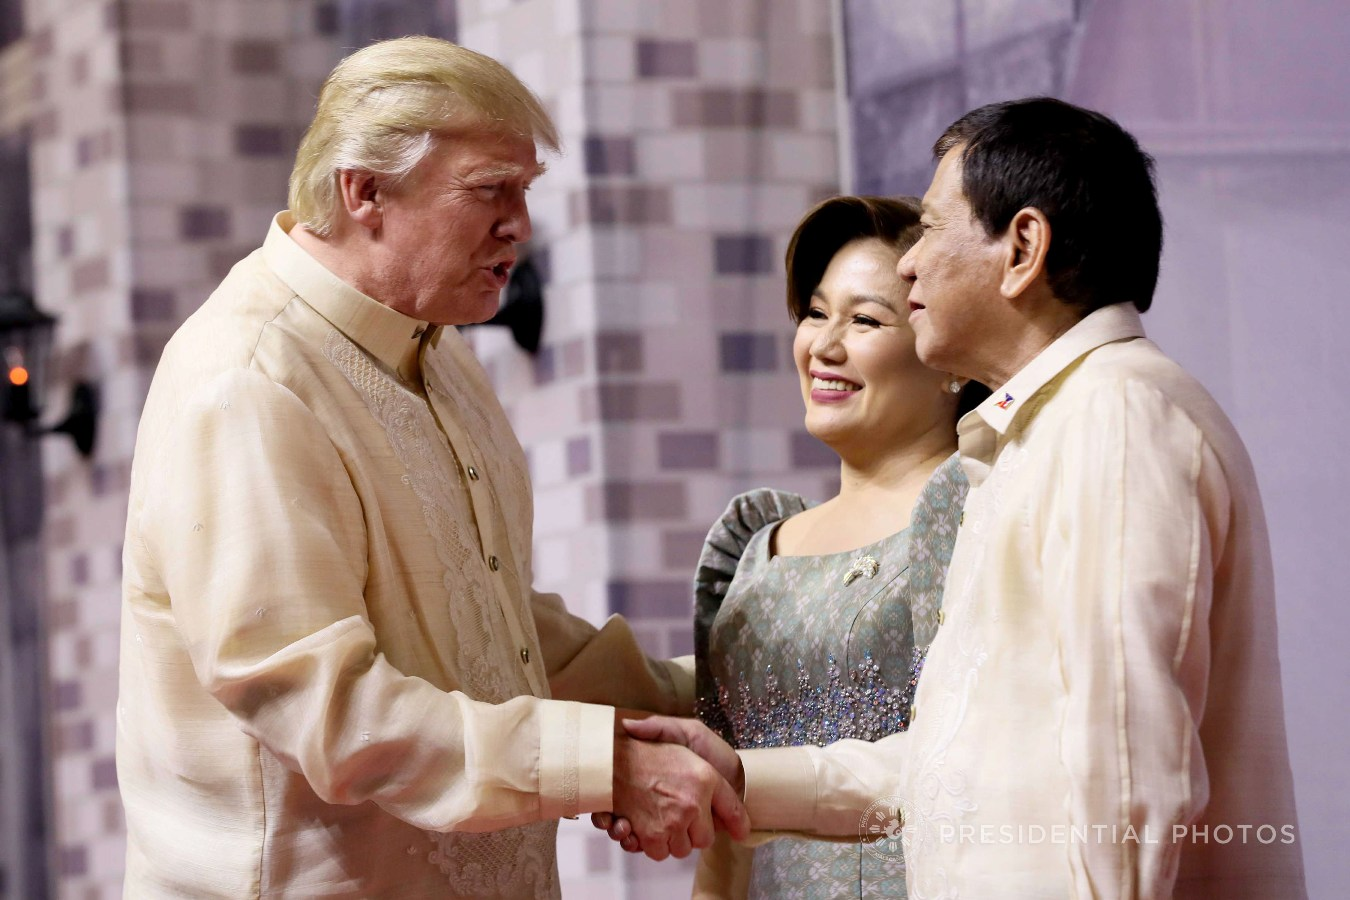 President Rodrigo Roa Duterte and his partner Honeylet welcome US President Donald Trump prior to the start of the gala dinner hosted by the Philippines for the leaders of the Association of Southeast Asian Nations (ASEAN) member states and dialogue partners at the SMX Convention Center in Pasay City on November 12, 2017. ACE MORANDANTE/PRESIDENIAL PHOTO